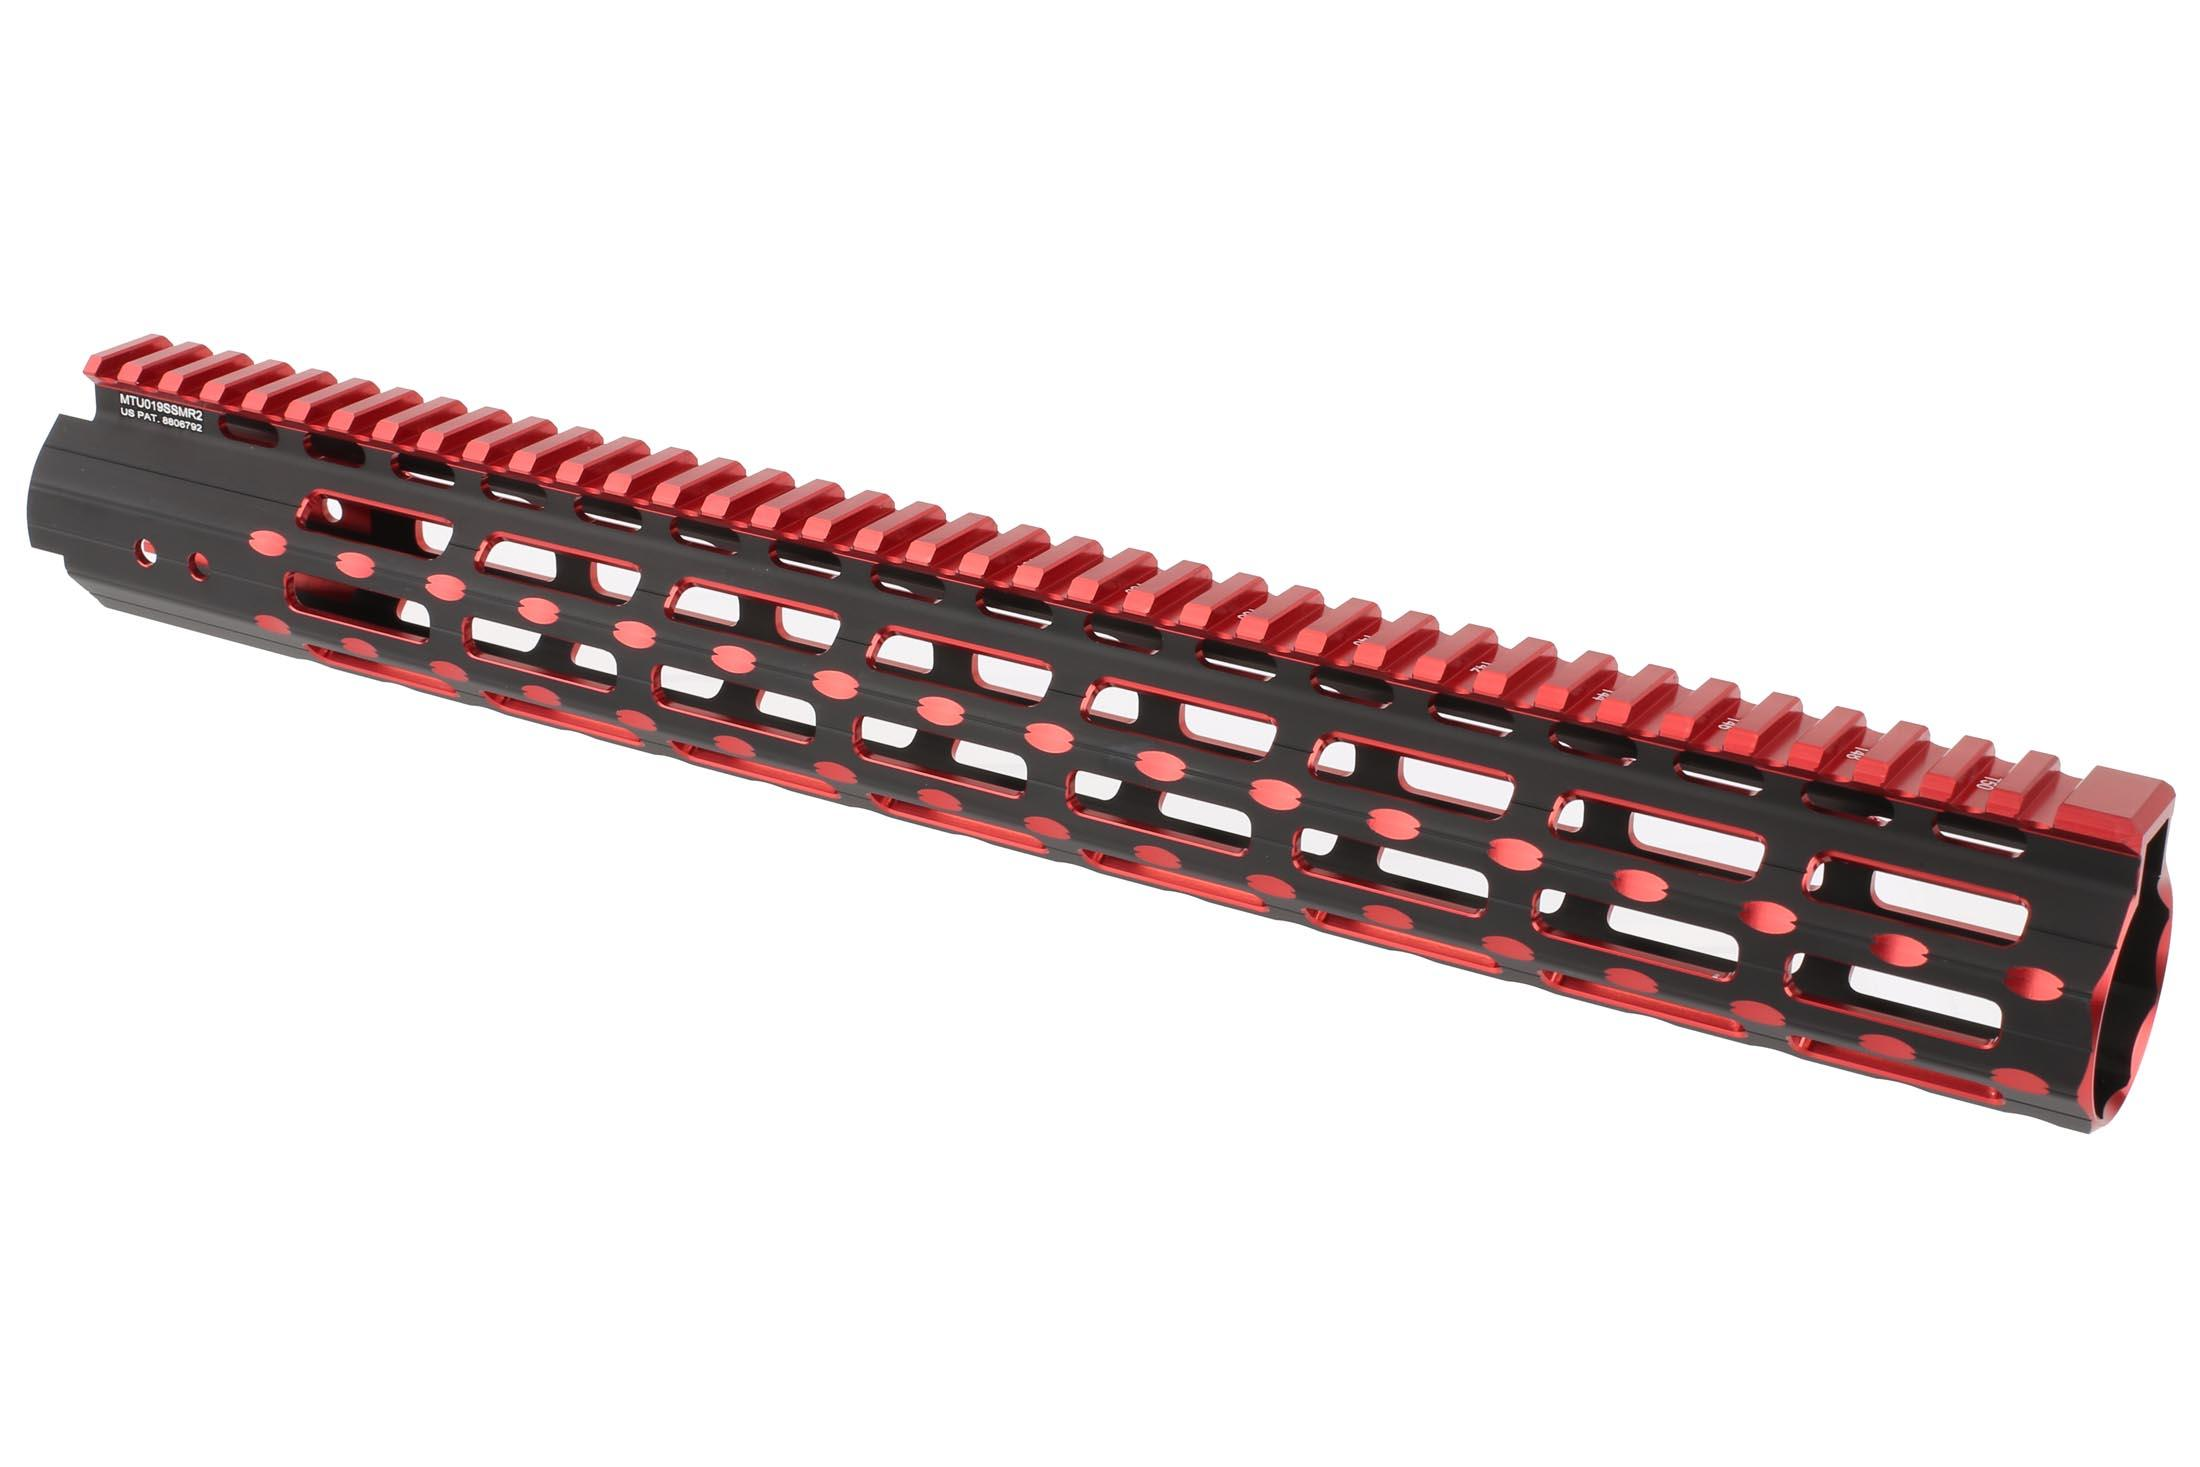 Leapers UTG PRO Model 4/15 15 Super Slim Free Float M-LOK Handguard - 2-Tone Black Red